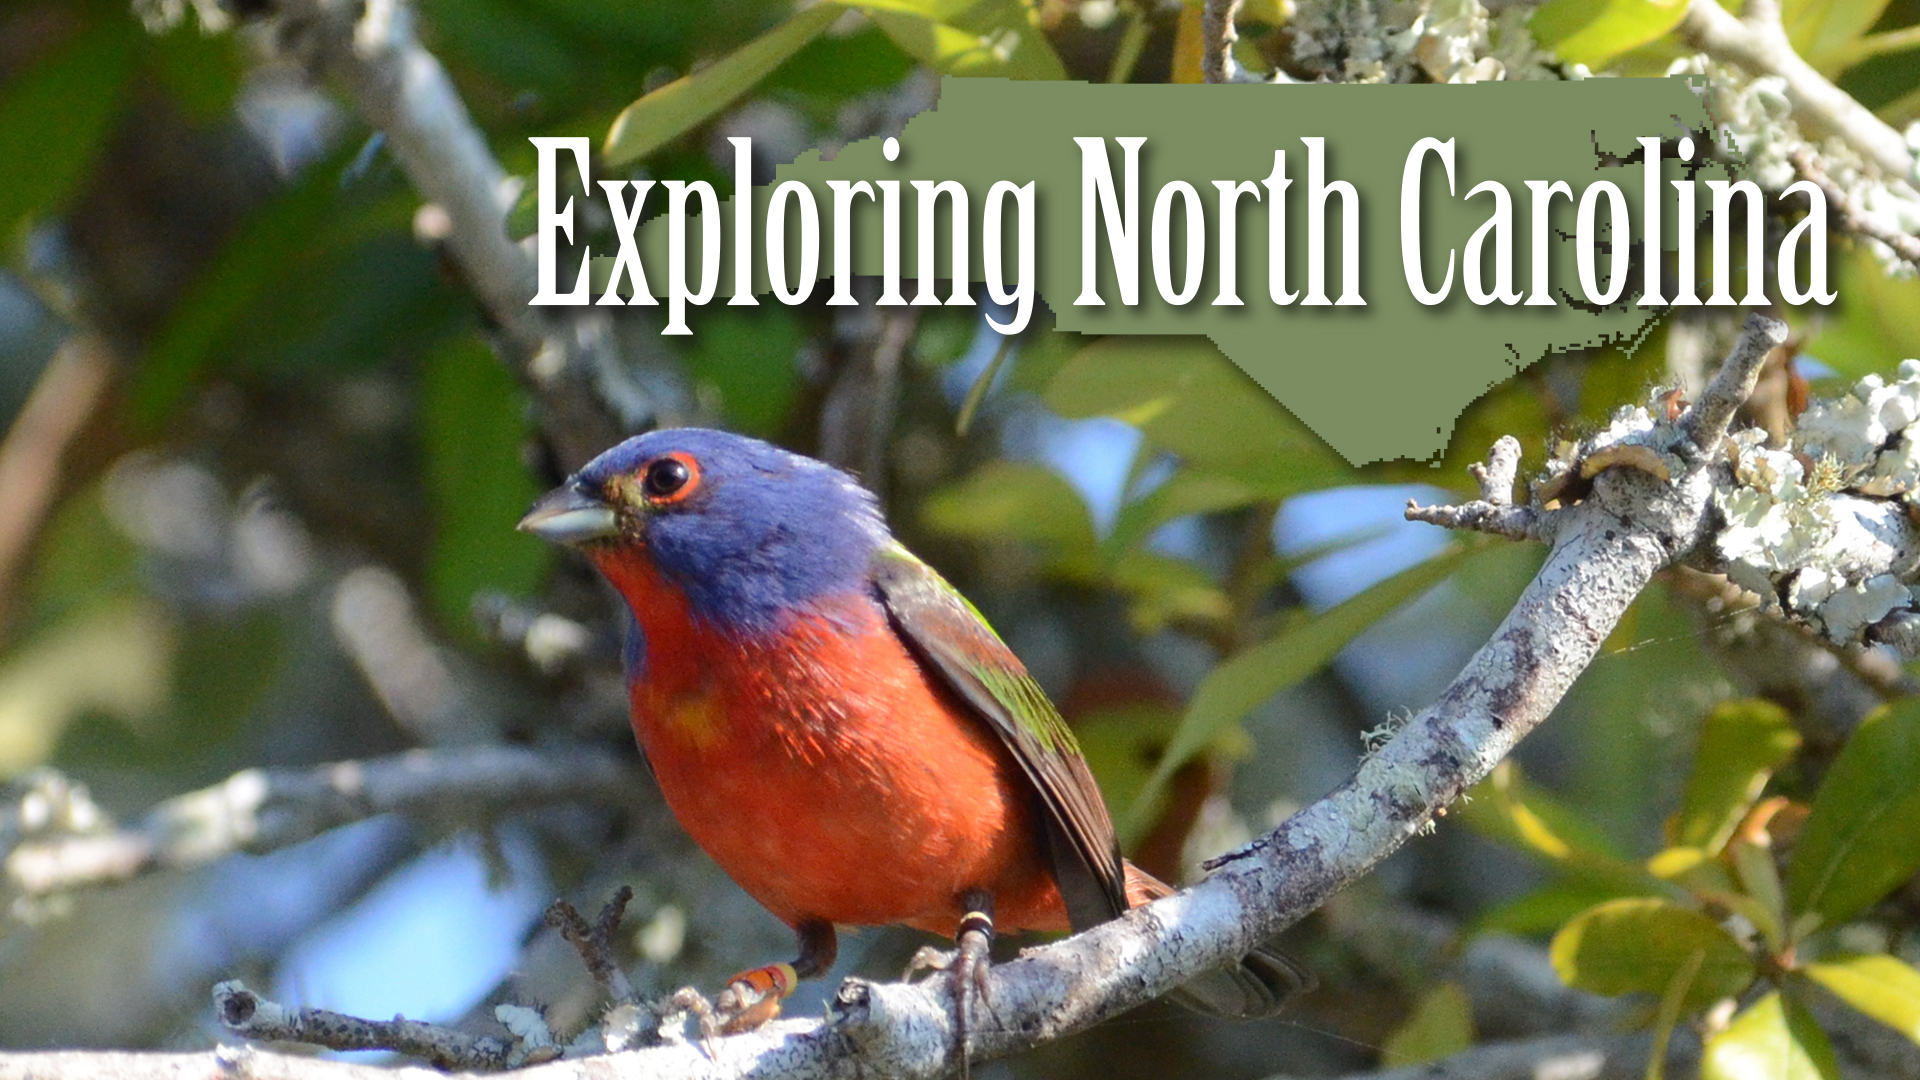 Learn More About Exploring North Carolina